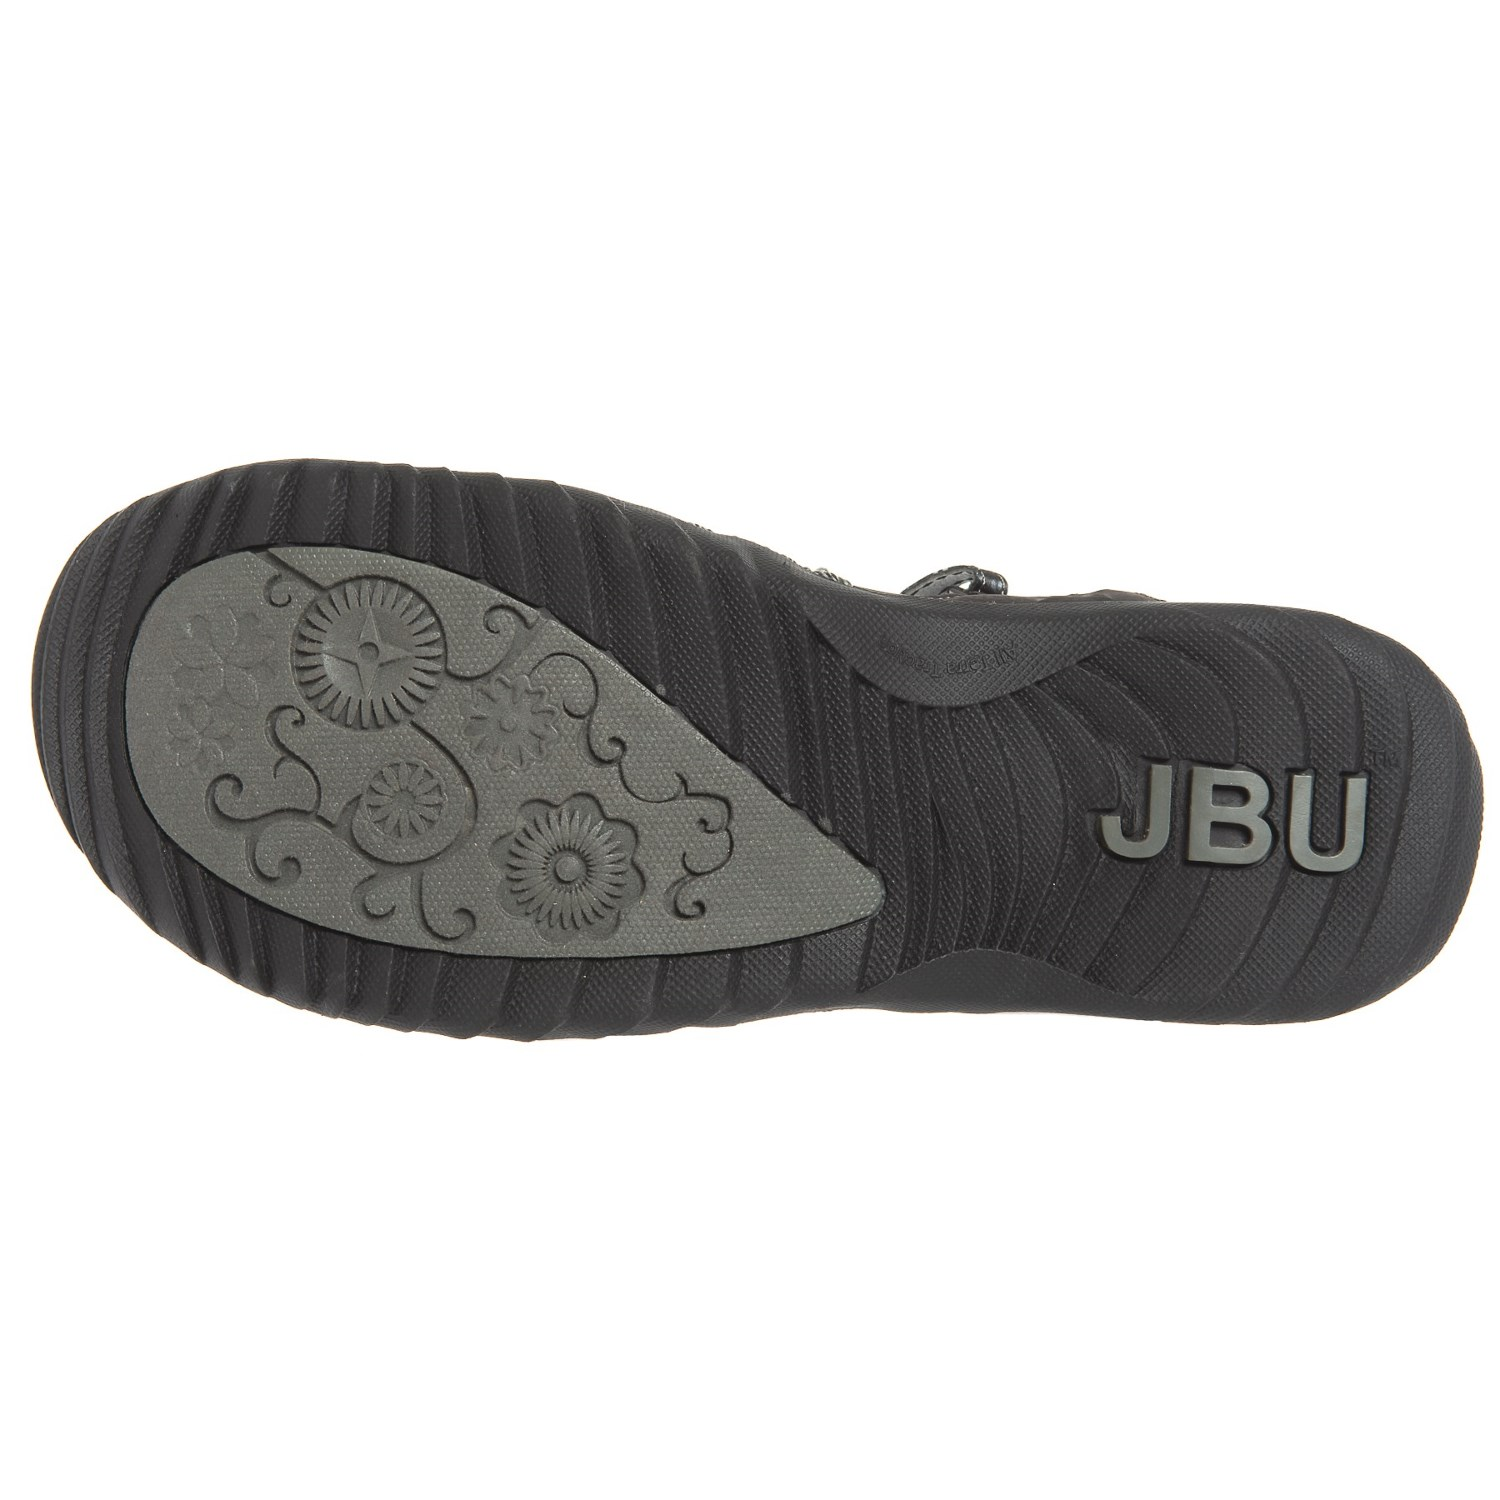 ed10a108cd27 JBU Wildflower Mary Jane Shoes - Vegan Leather (For Women)